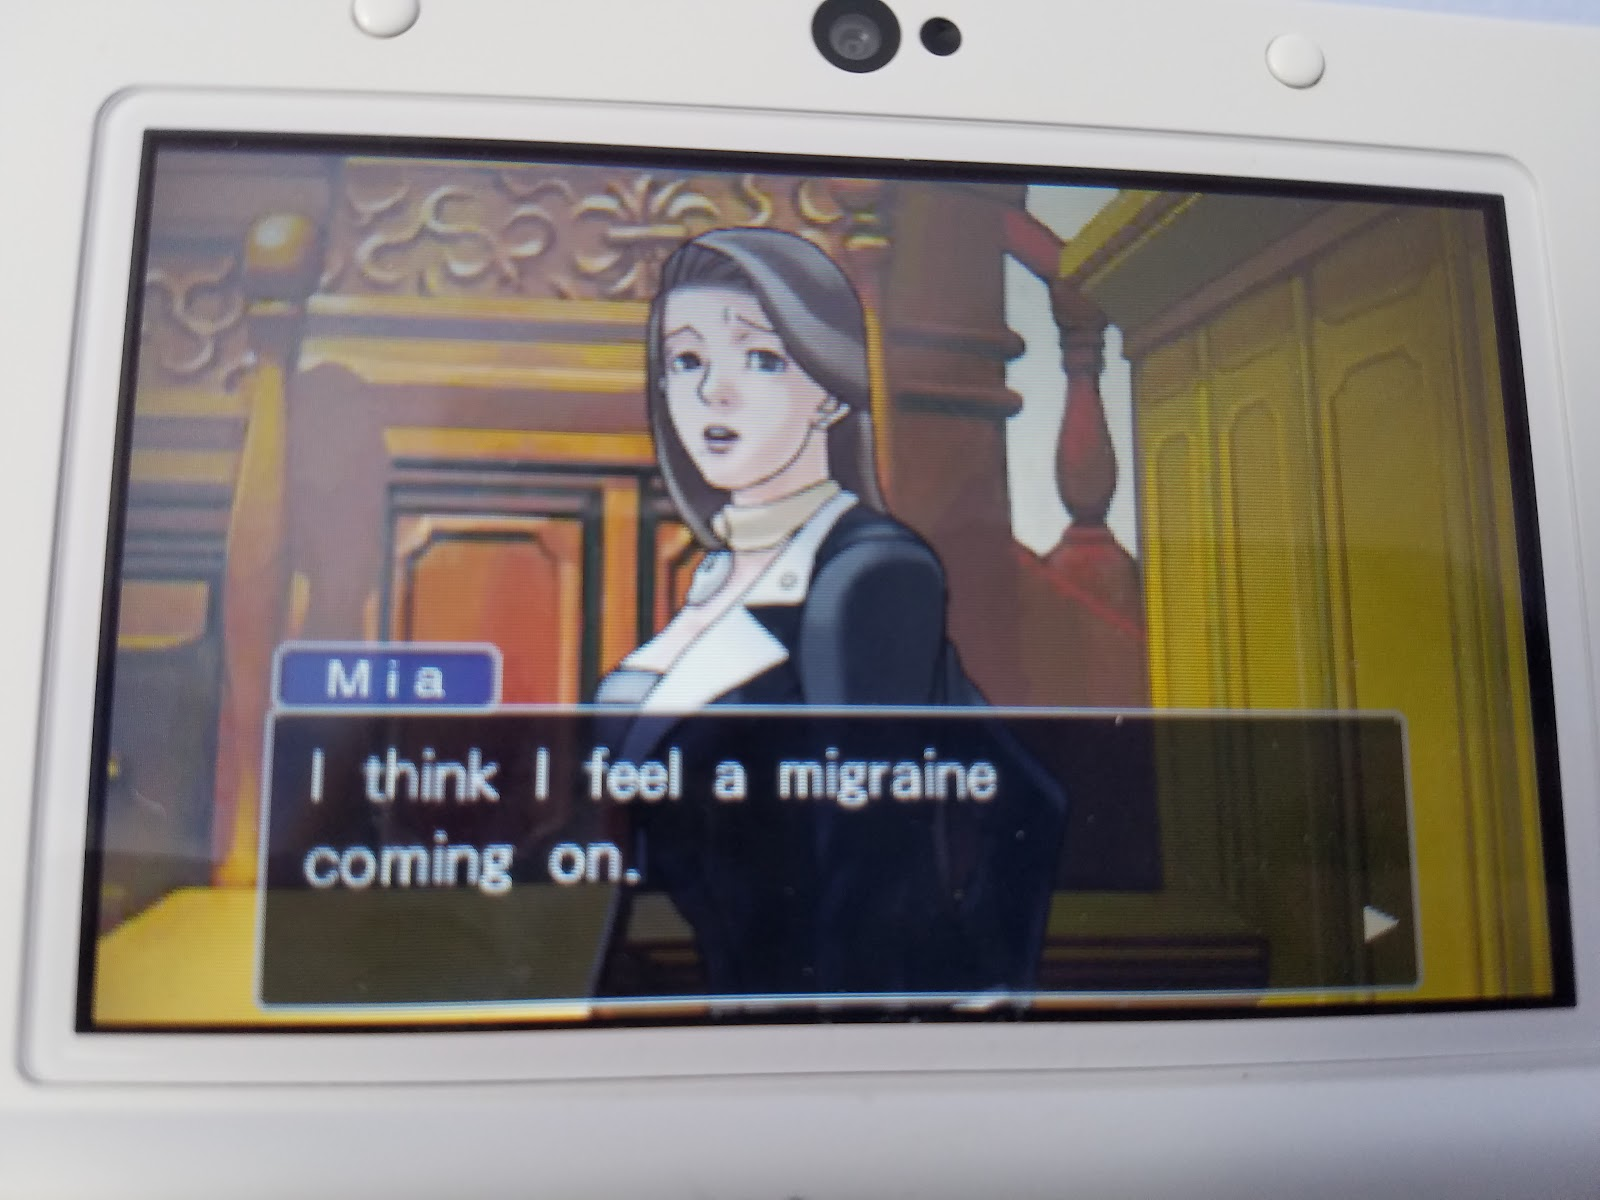 Phoenix Wright Ace Attorney Mia Fey feel a migraine headache